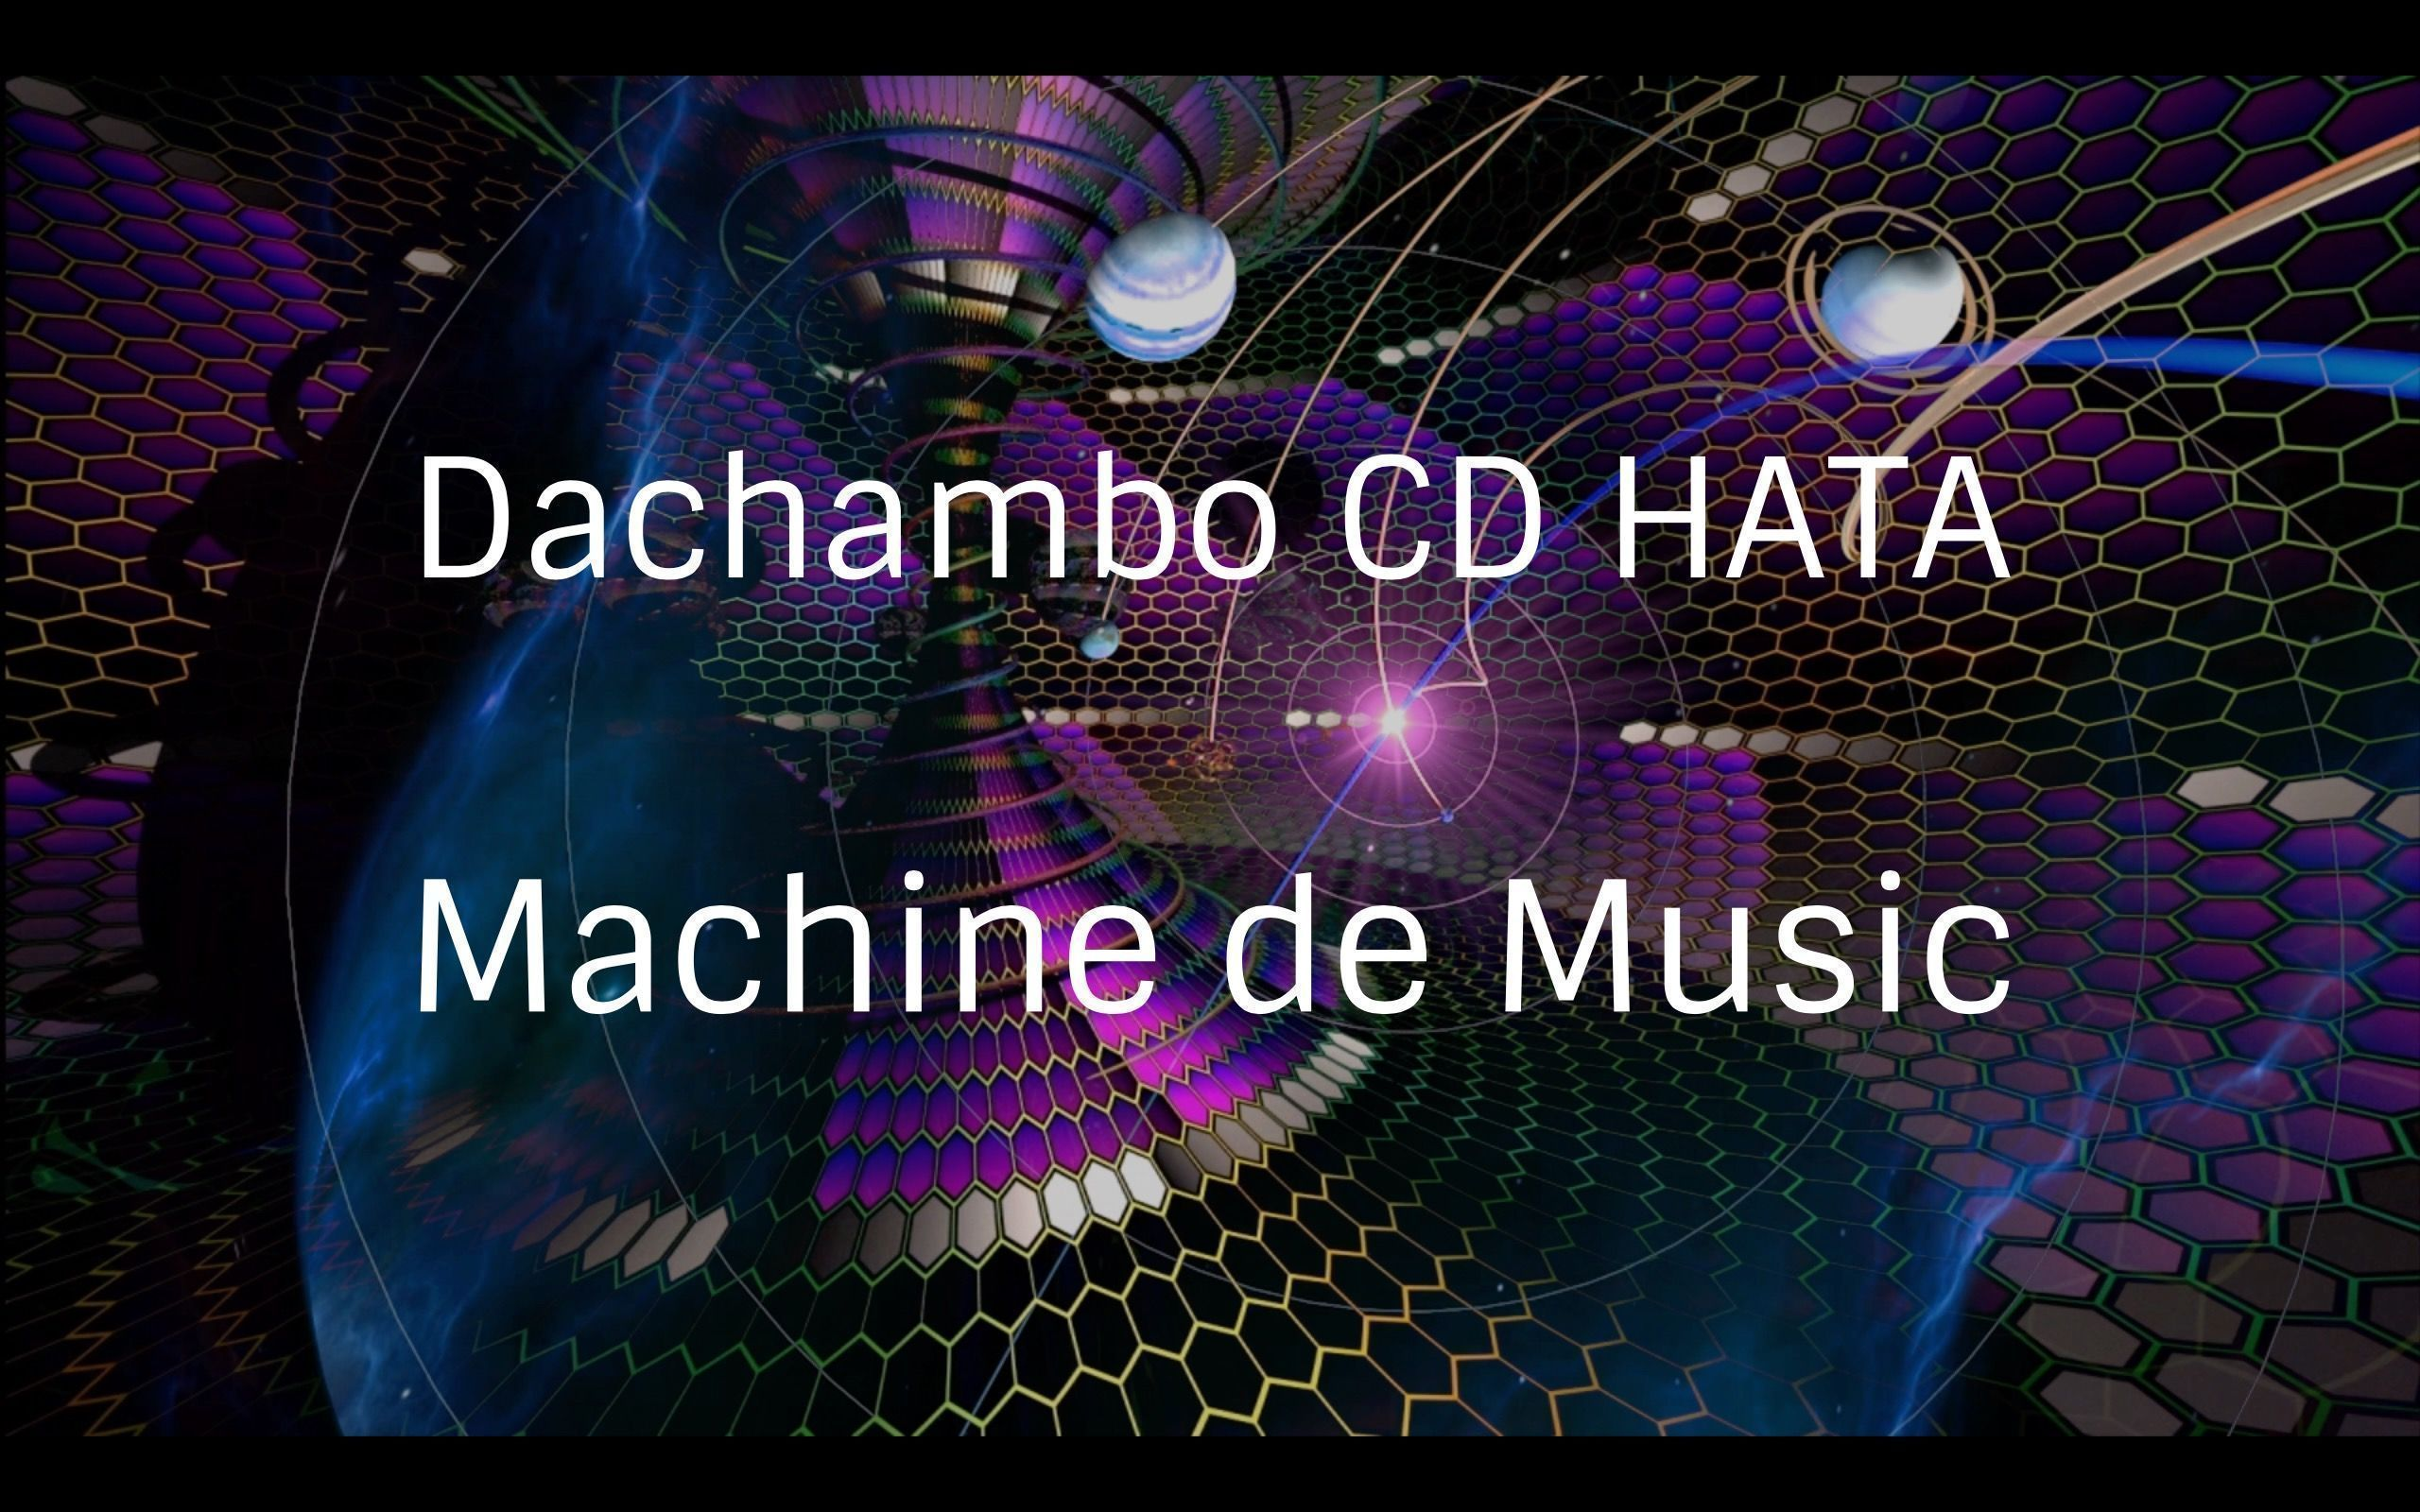 Dachambo CD HATAのMachine de Music コラムVol.67 『rooms 40』に潜入!!